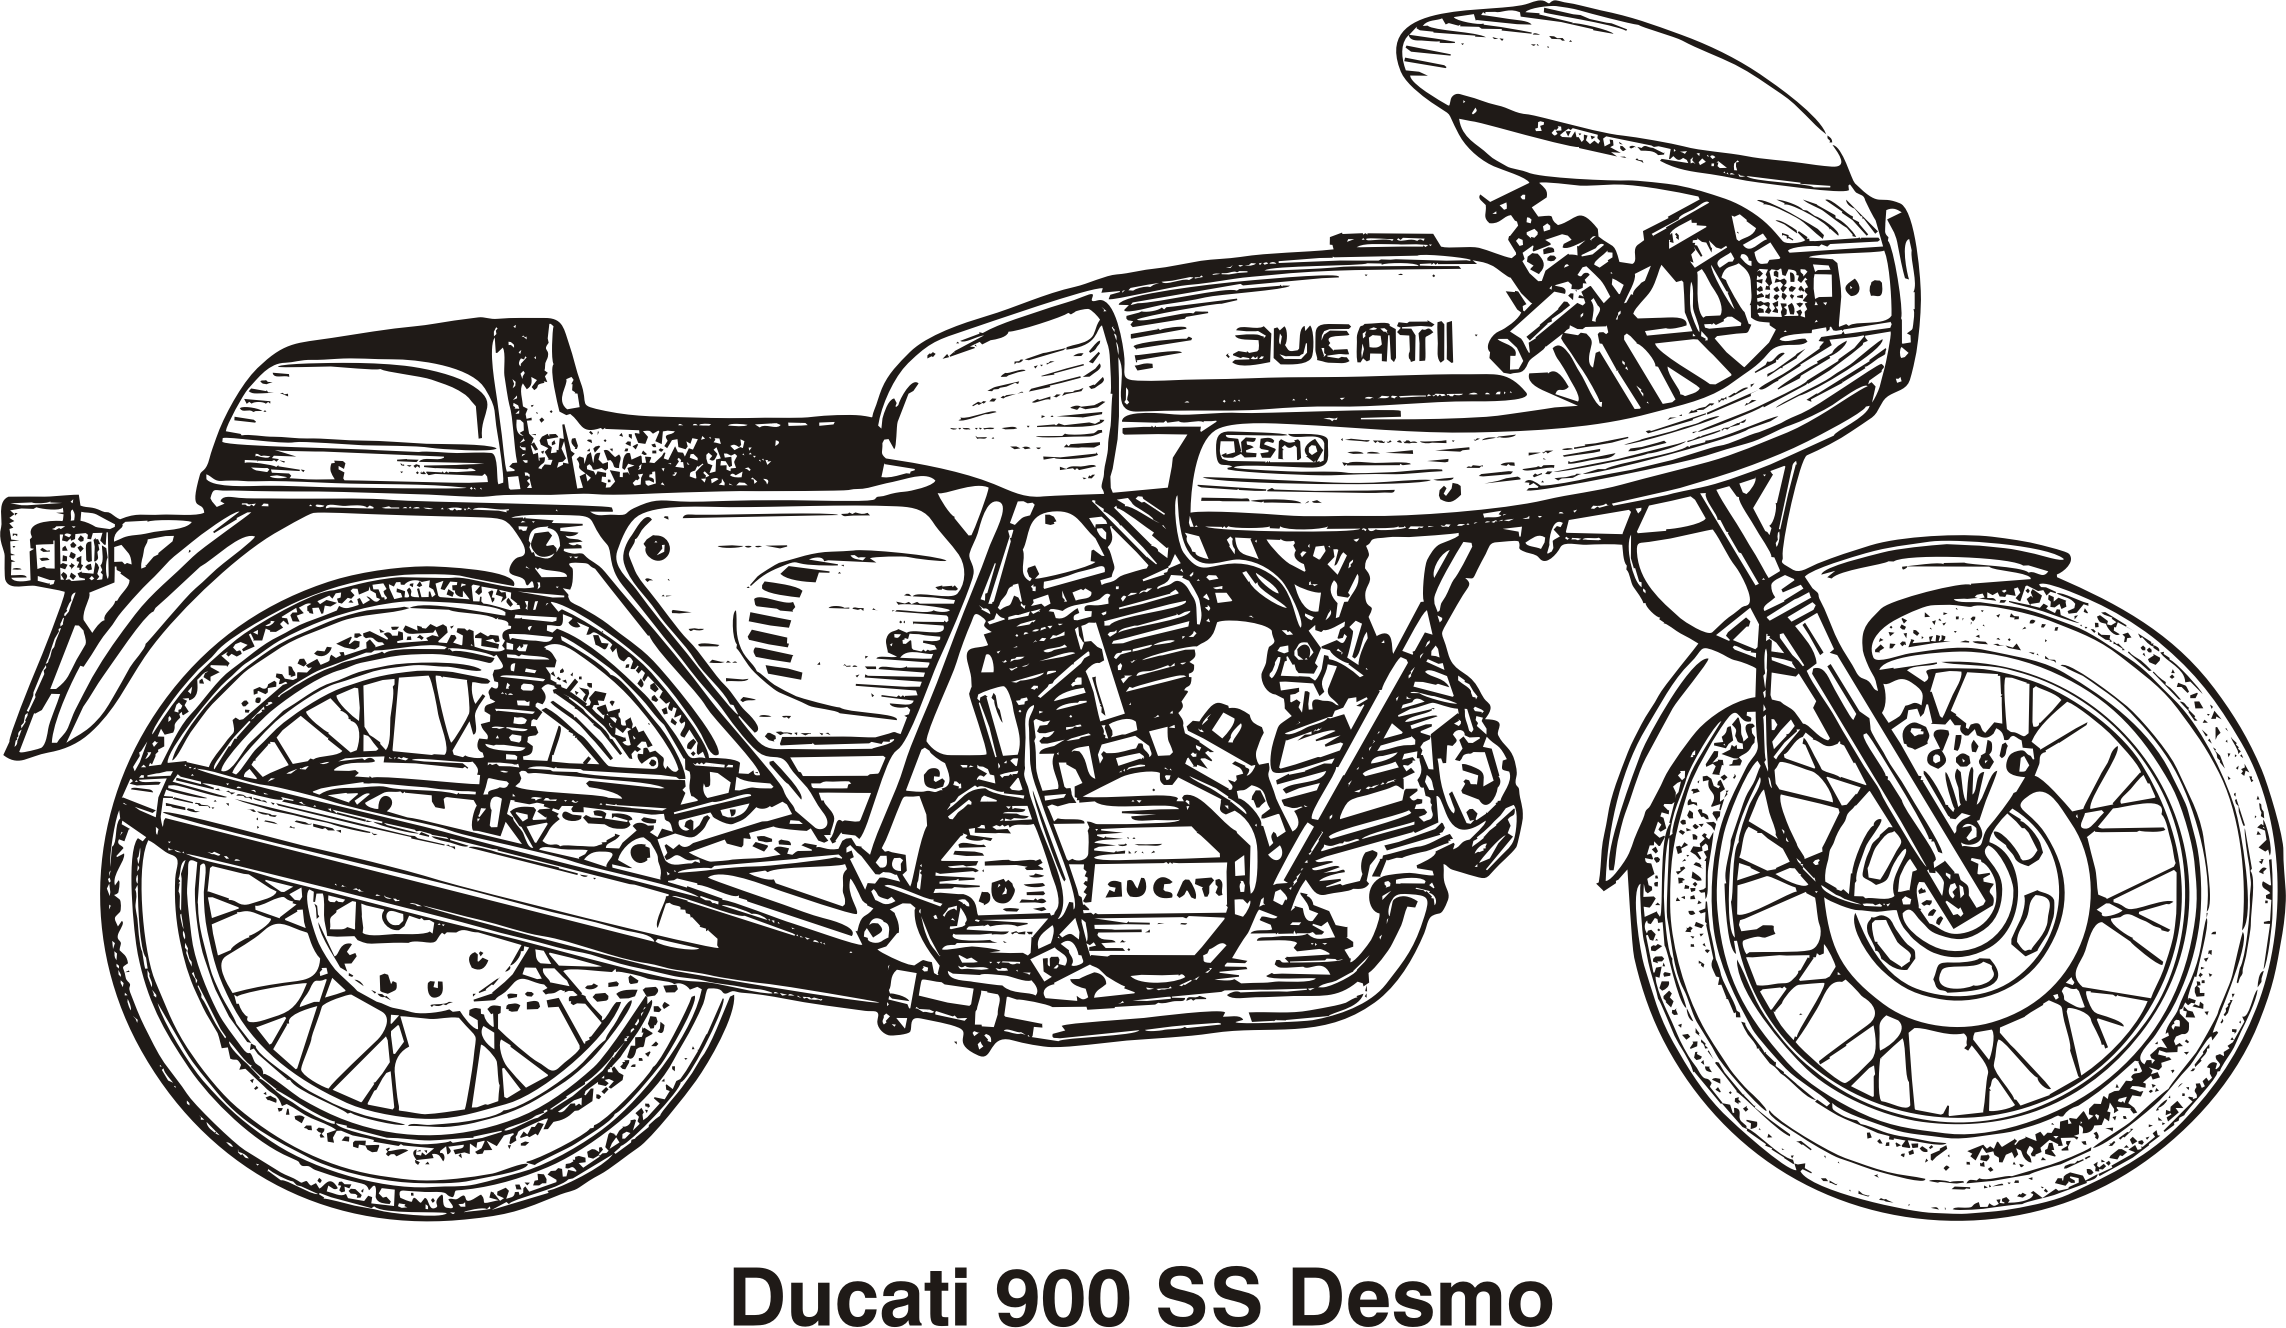 Ducati 900 SS Desmo, year 1980 by Vanja